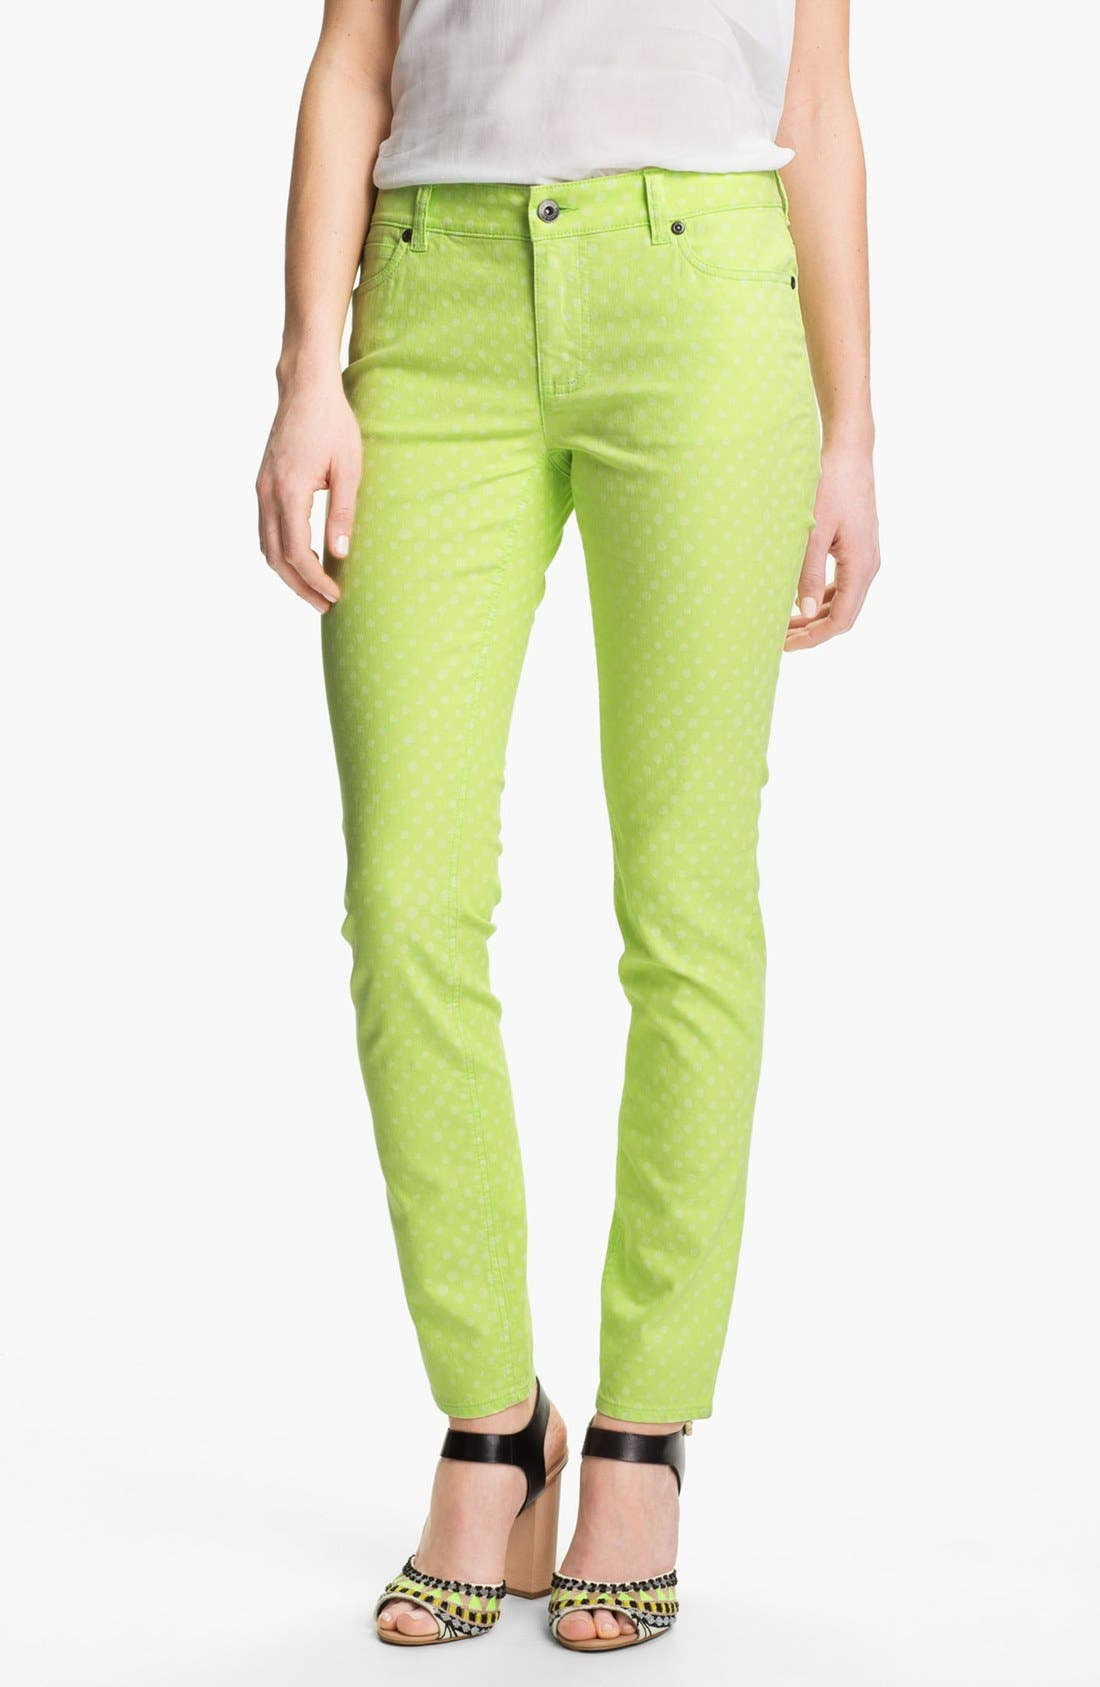 Main Image - Two by Vince Camuto Polka Dot Straight Leg Jeans